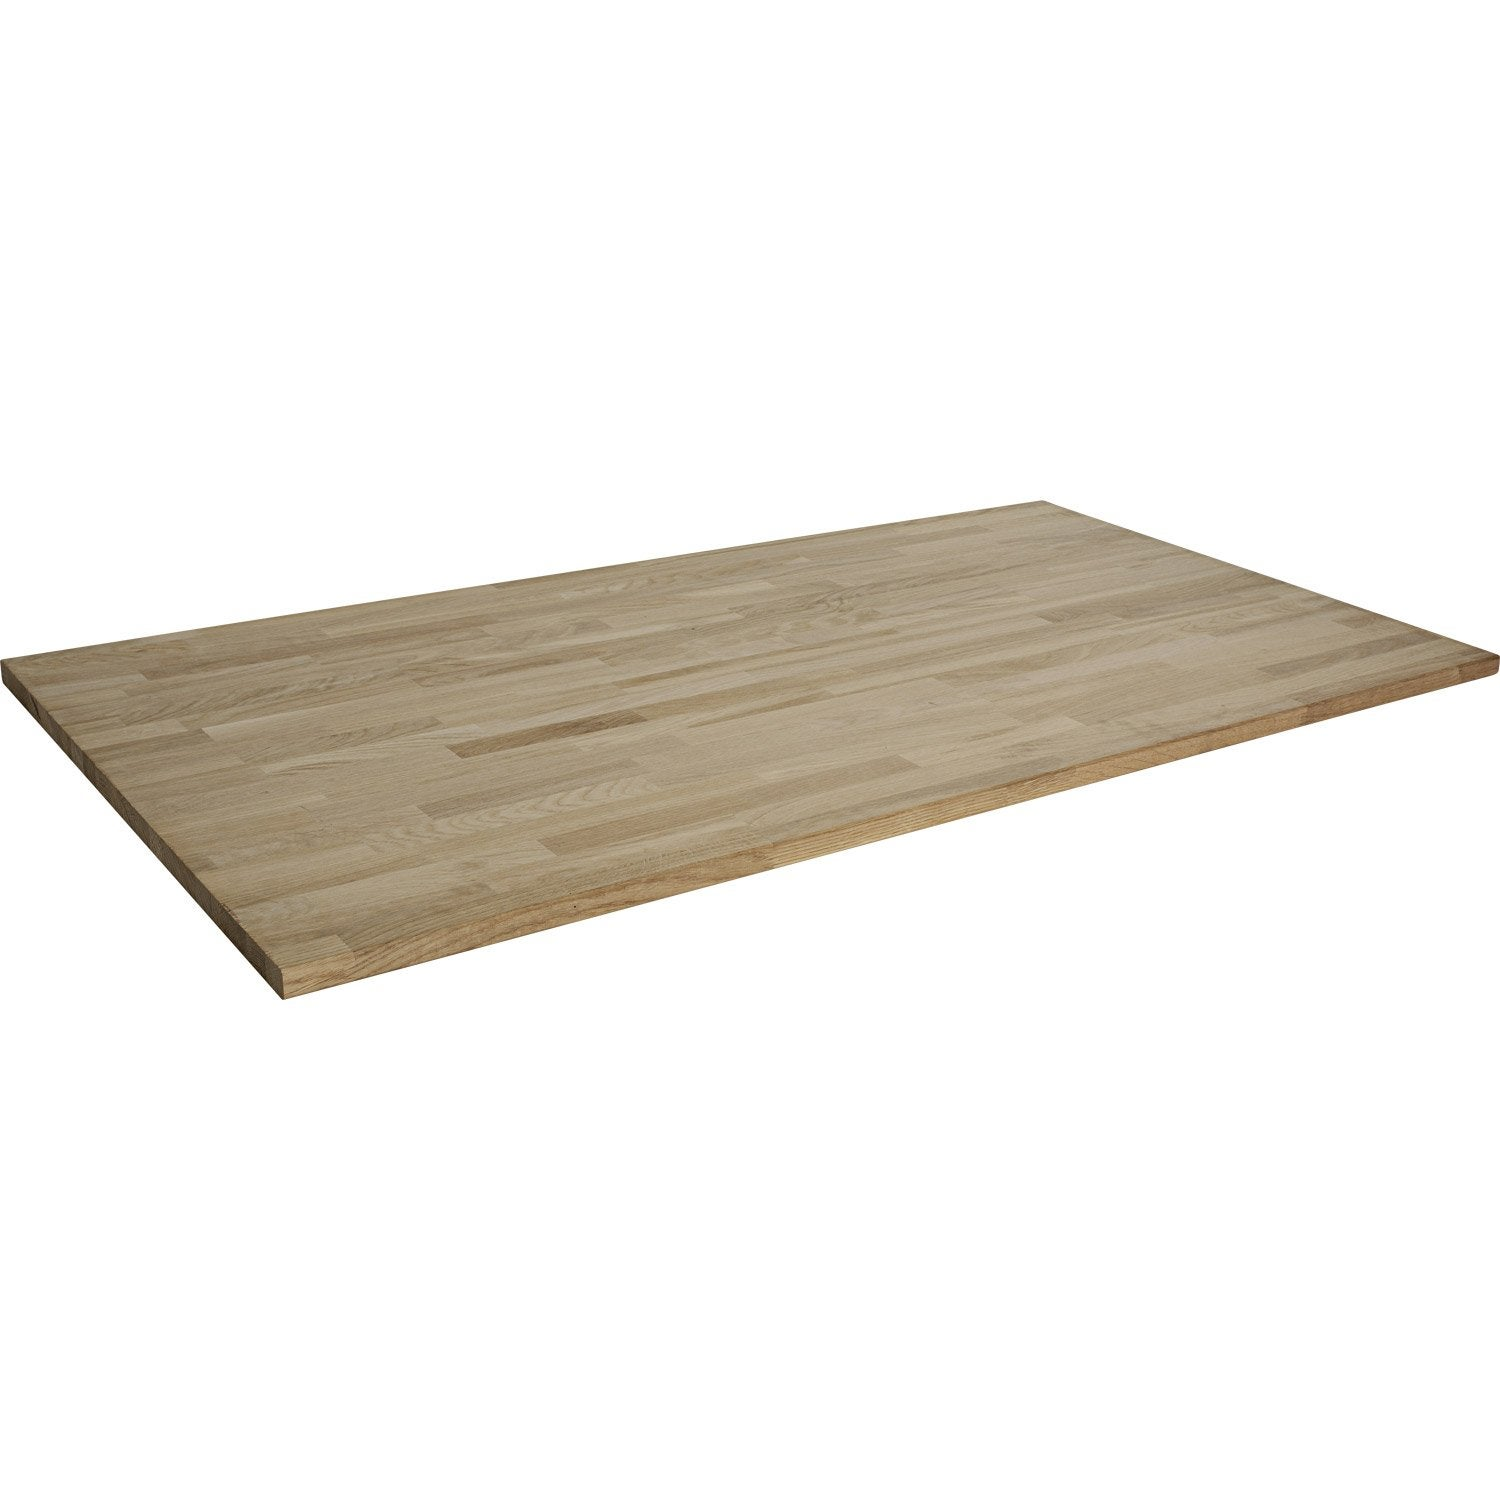 Plateau de table bois massif x cm mm for Plateau table cuisine